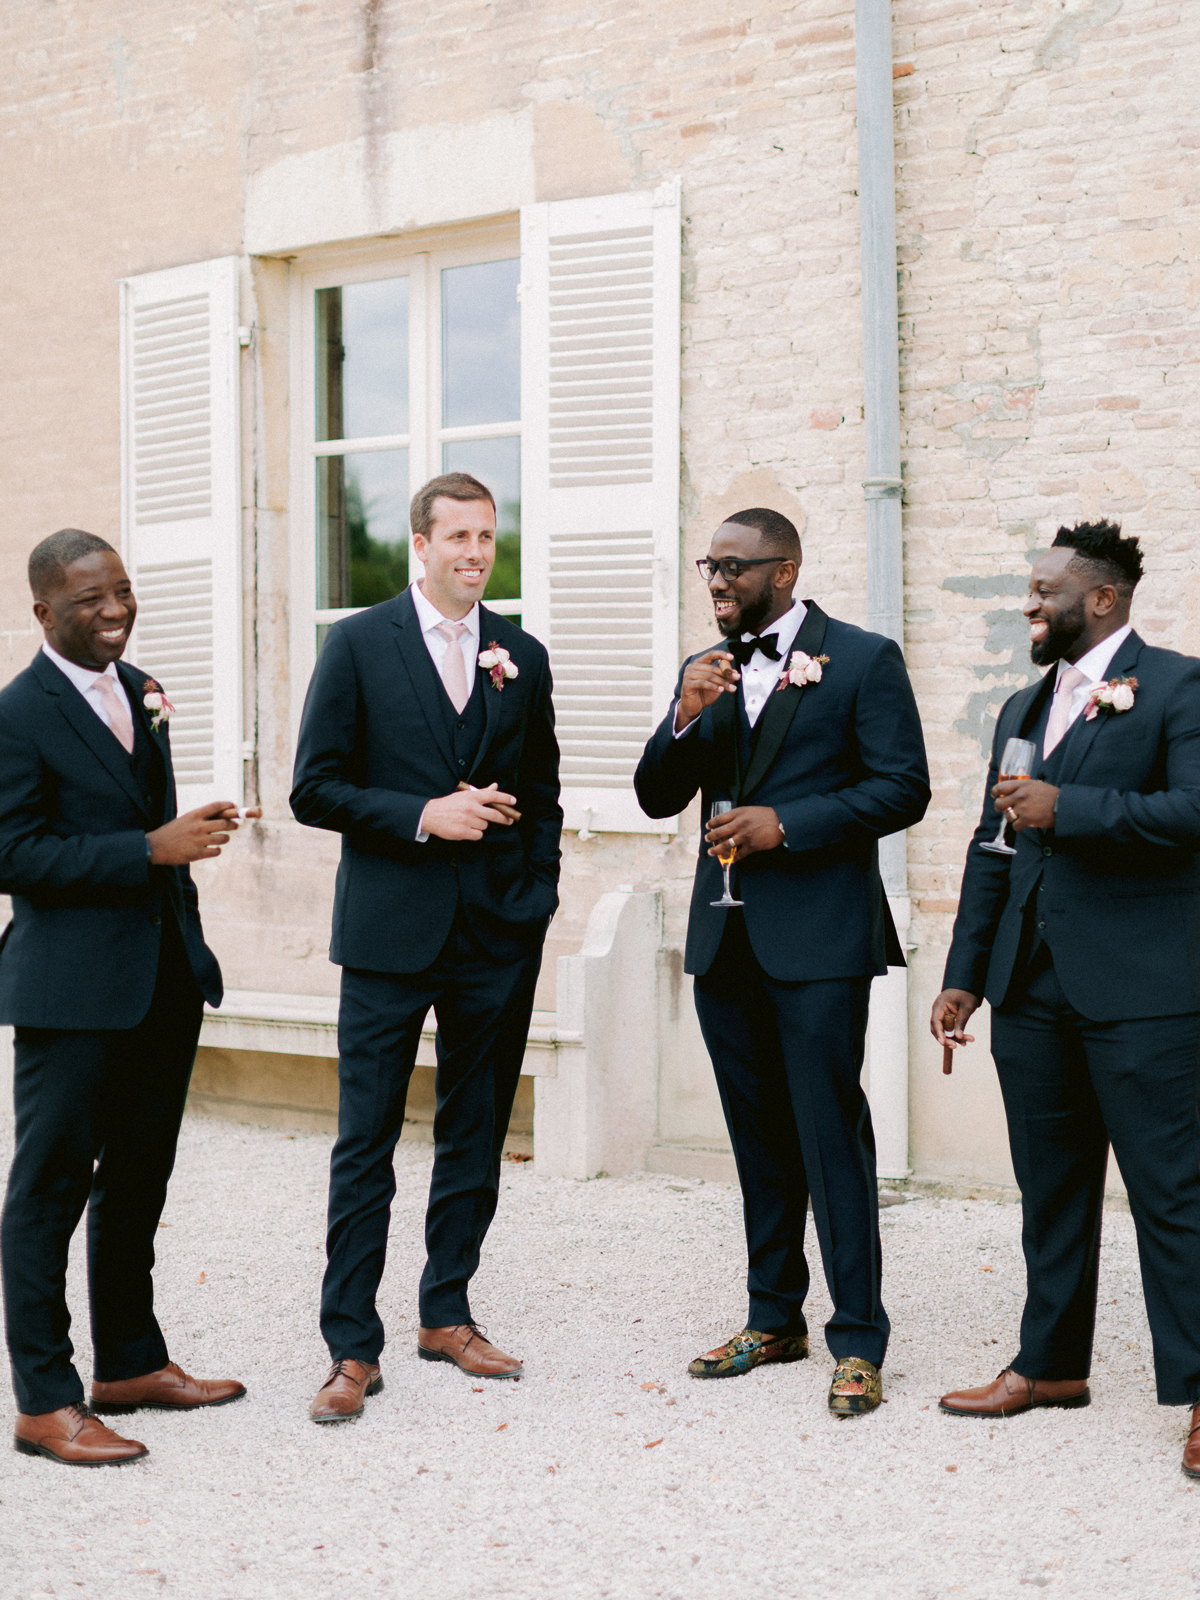 groom standing with groomsmen before wedding